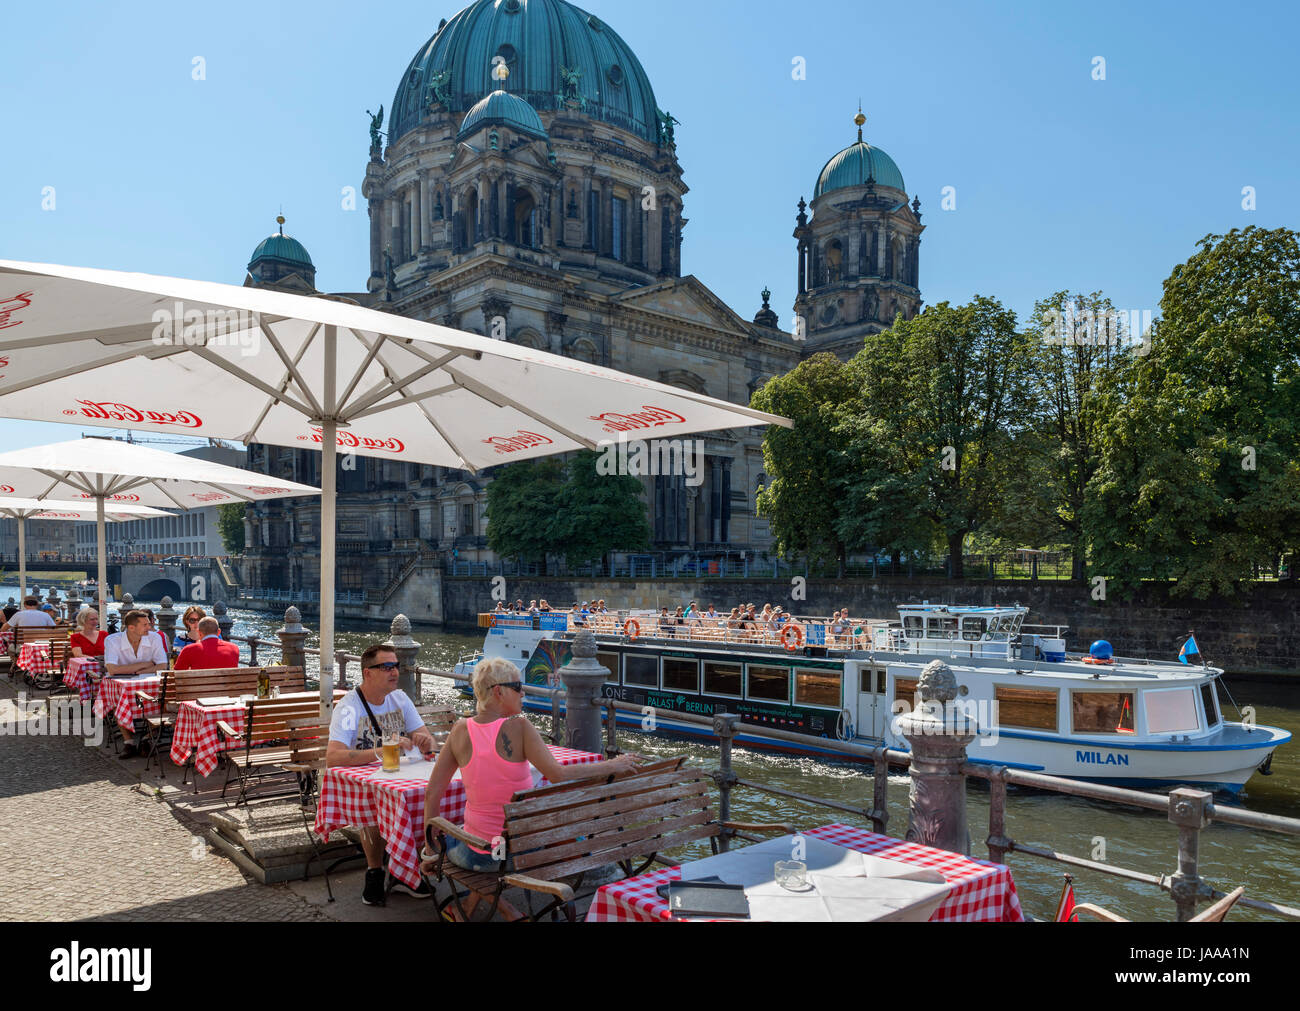 Cafe on the banks of the Spree river with the Berliner Dom (Berlin Cathedral) behind, Spreeufer, Nikolaiviertel, - Stock Image